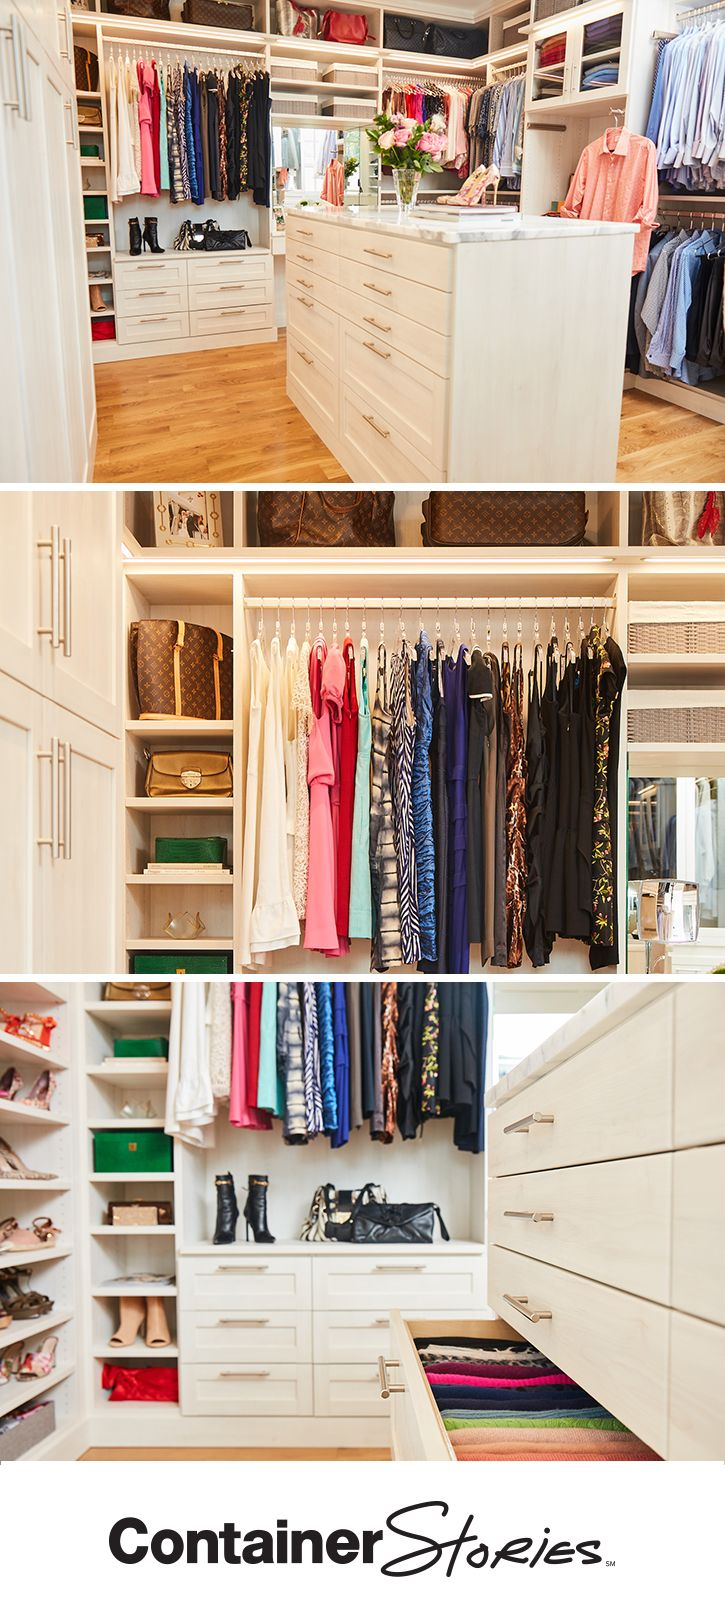 There's room for everything in Brooke and her husband's new TCS Closet. Charlie, her Contained Home Organizer created a plan that brought her dream space to life.